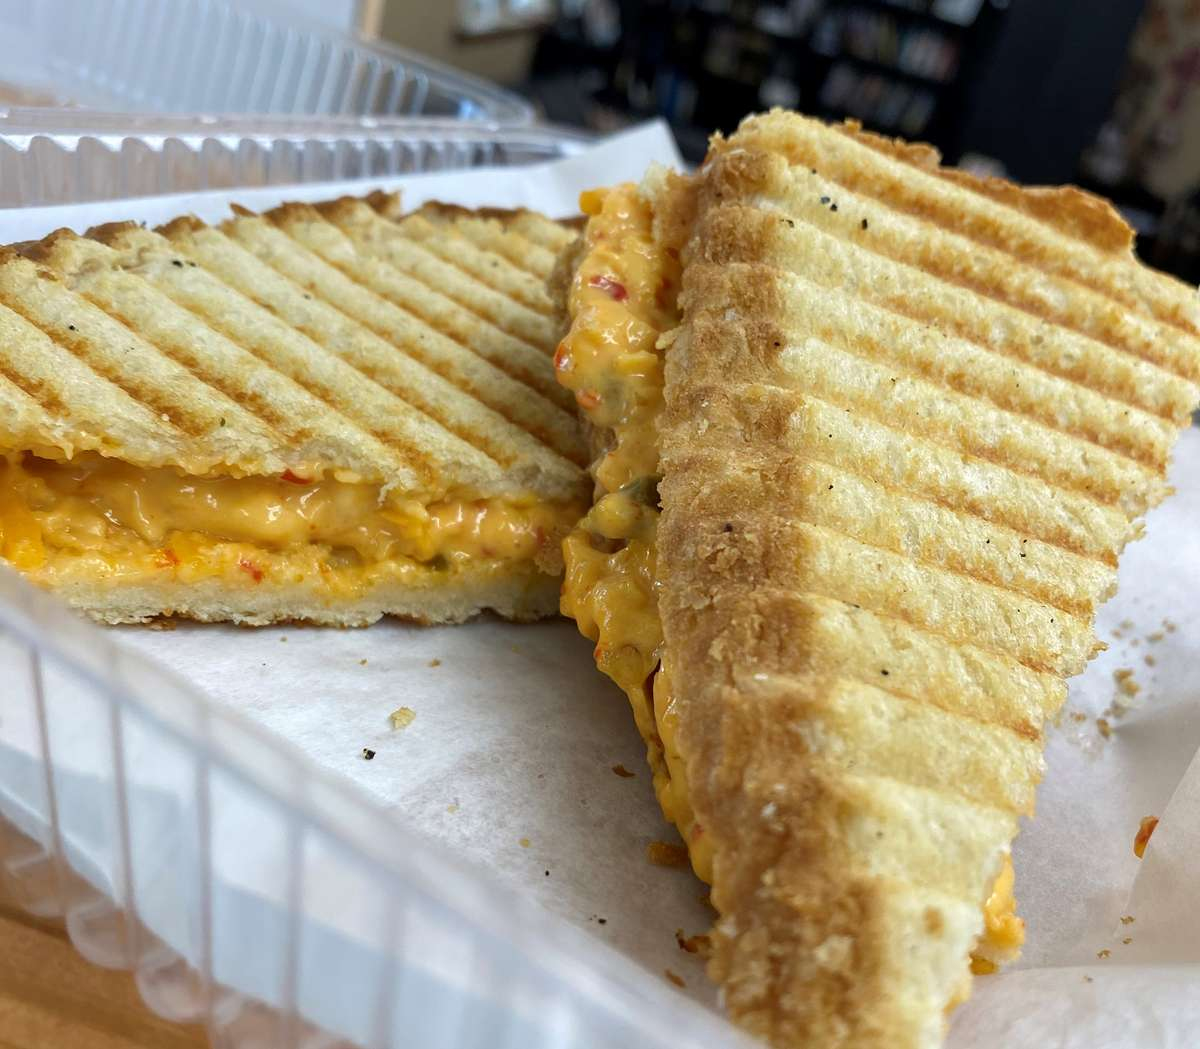 Grilled Jalapeno Pimento Cheese Sandwich